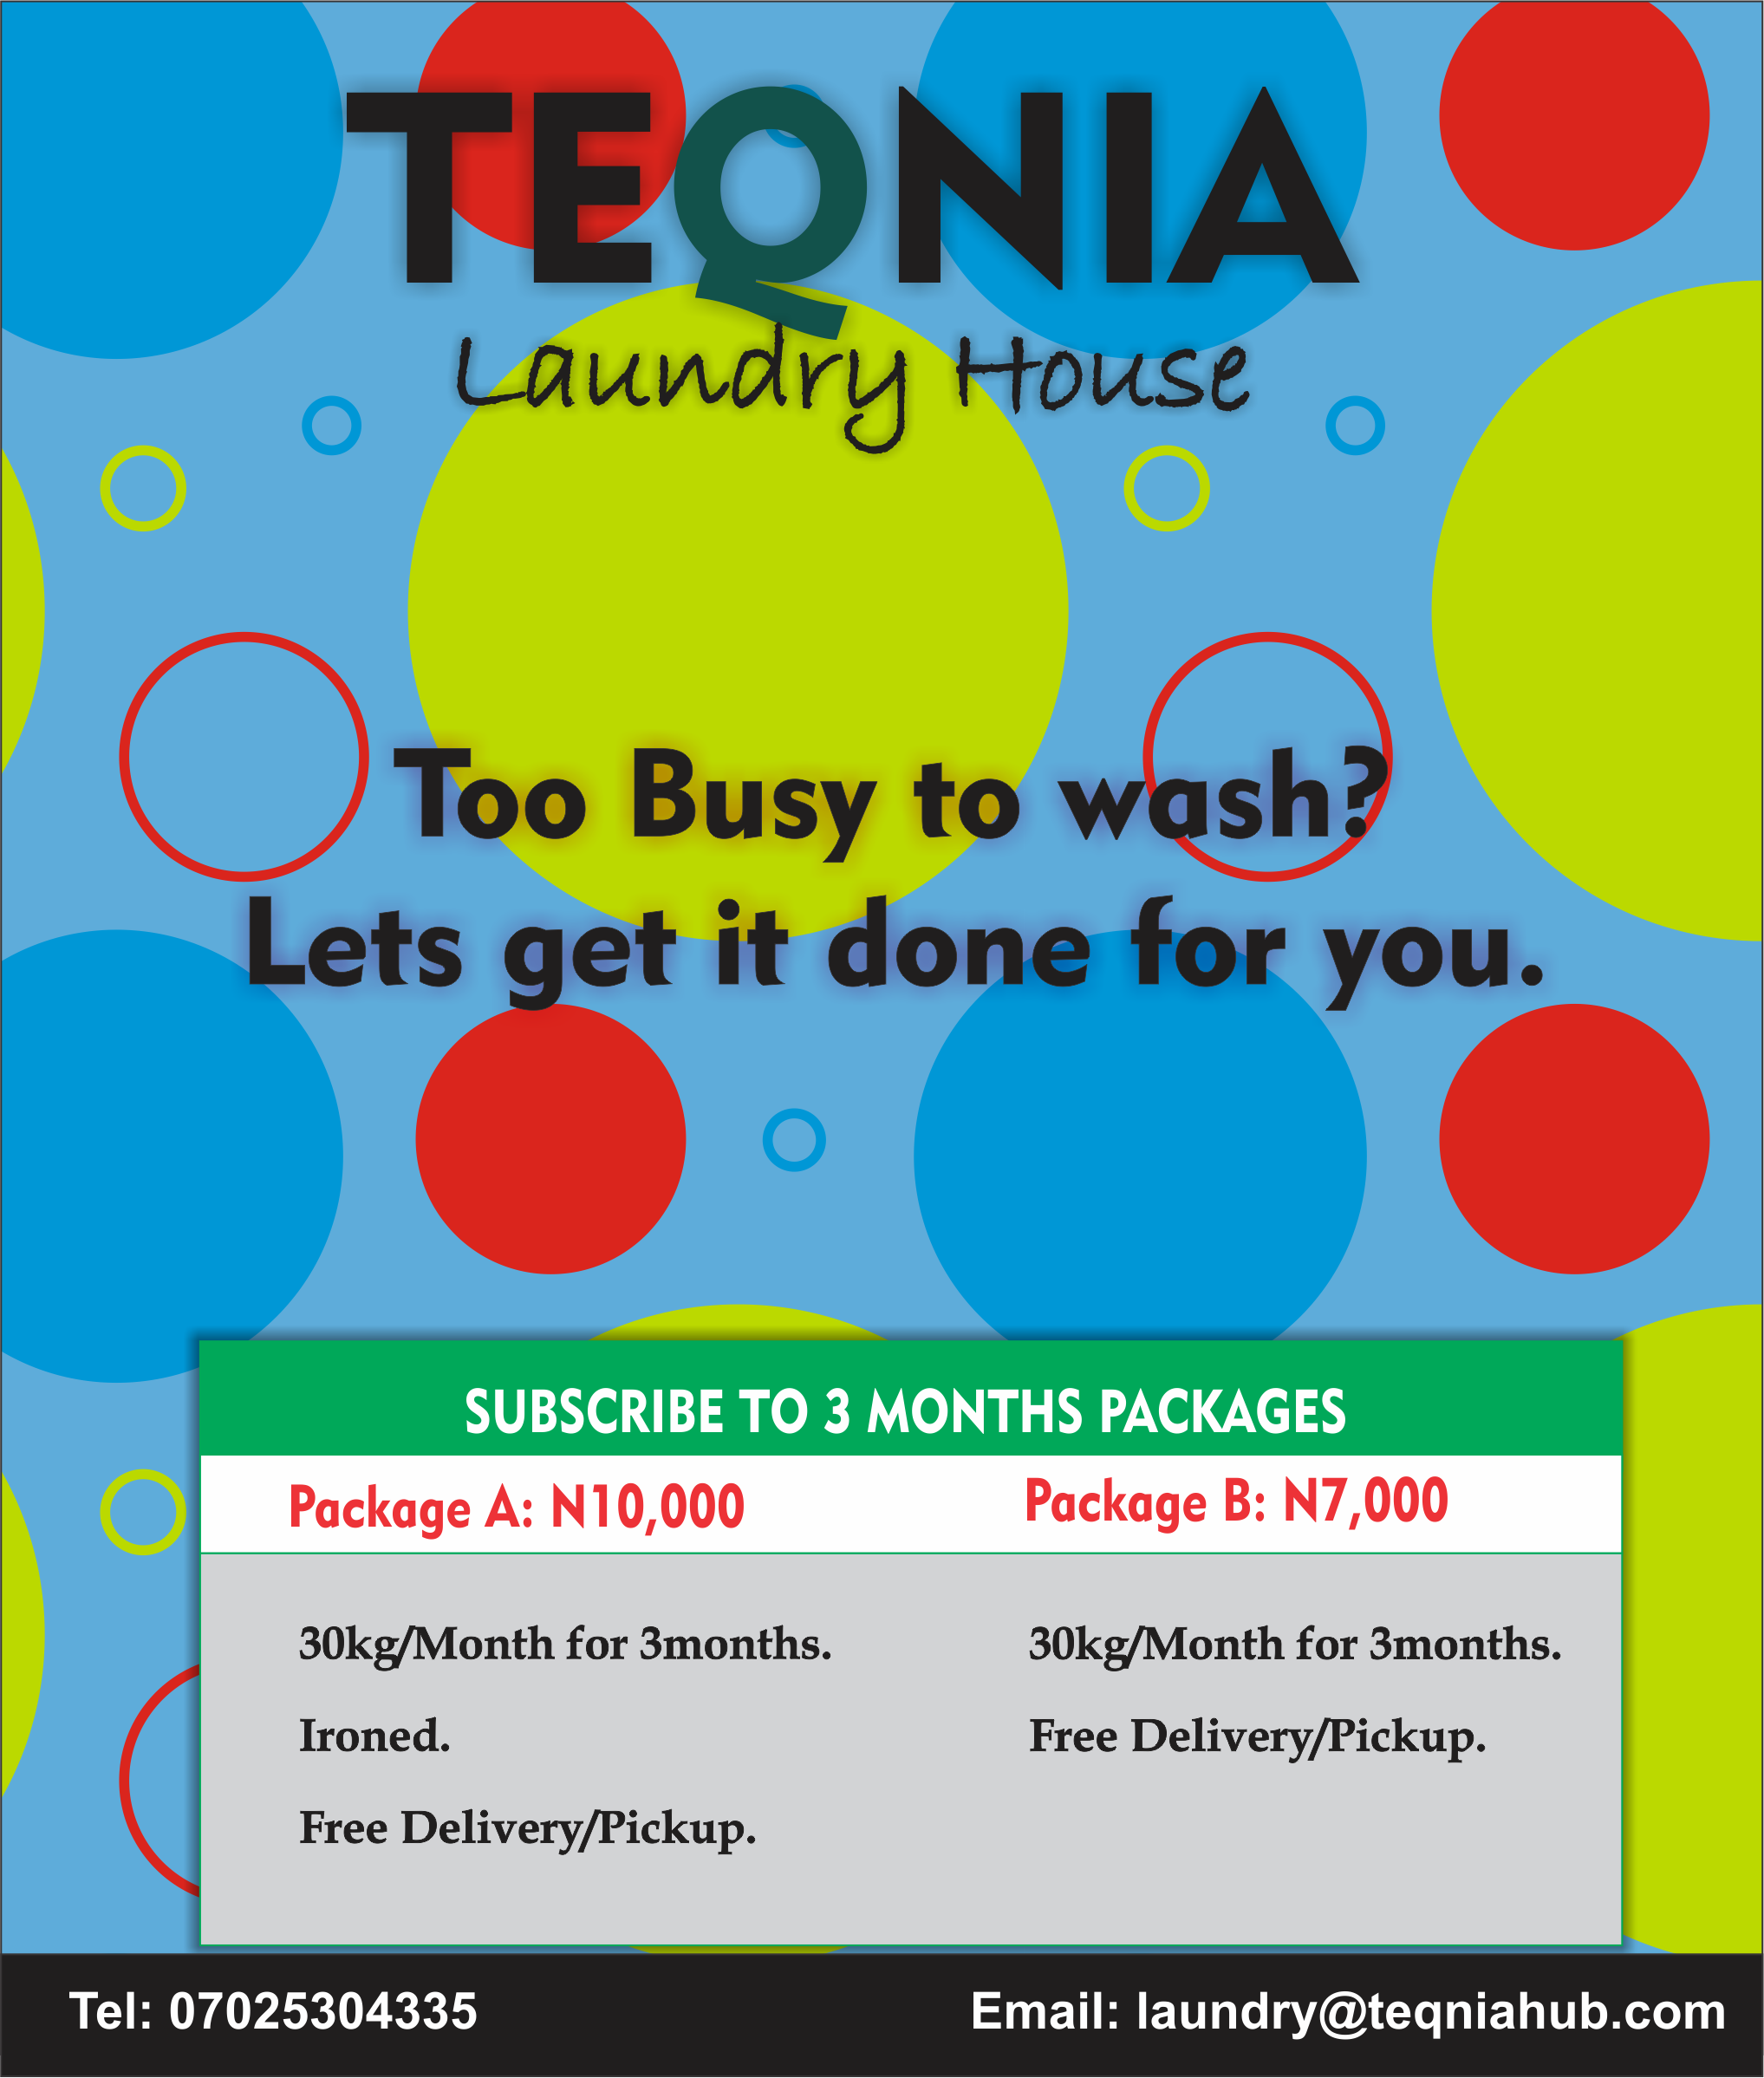 Teqnia-Laundry-Services